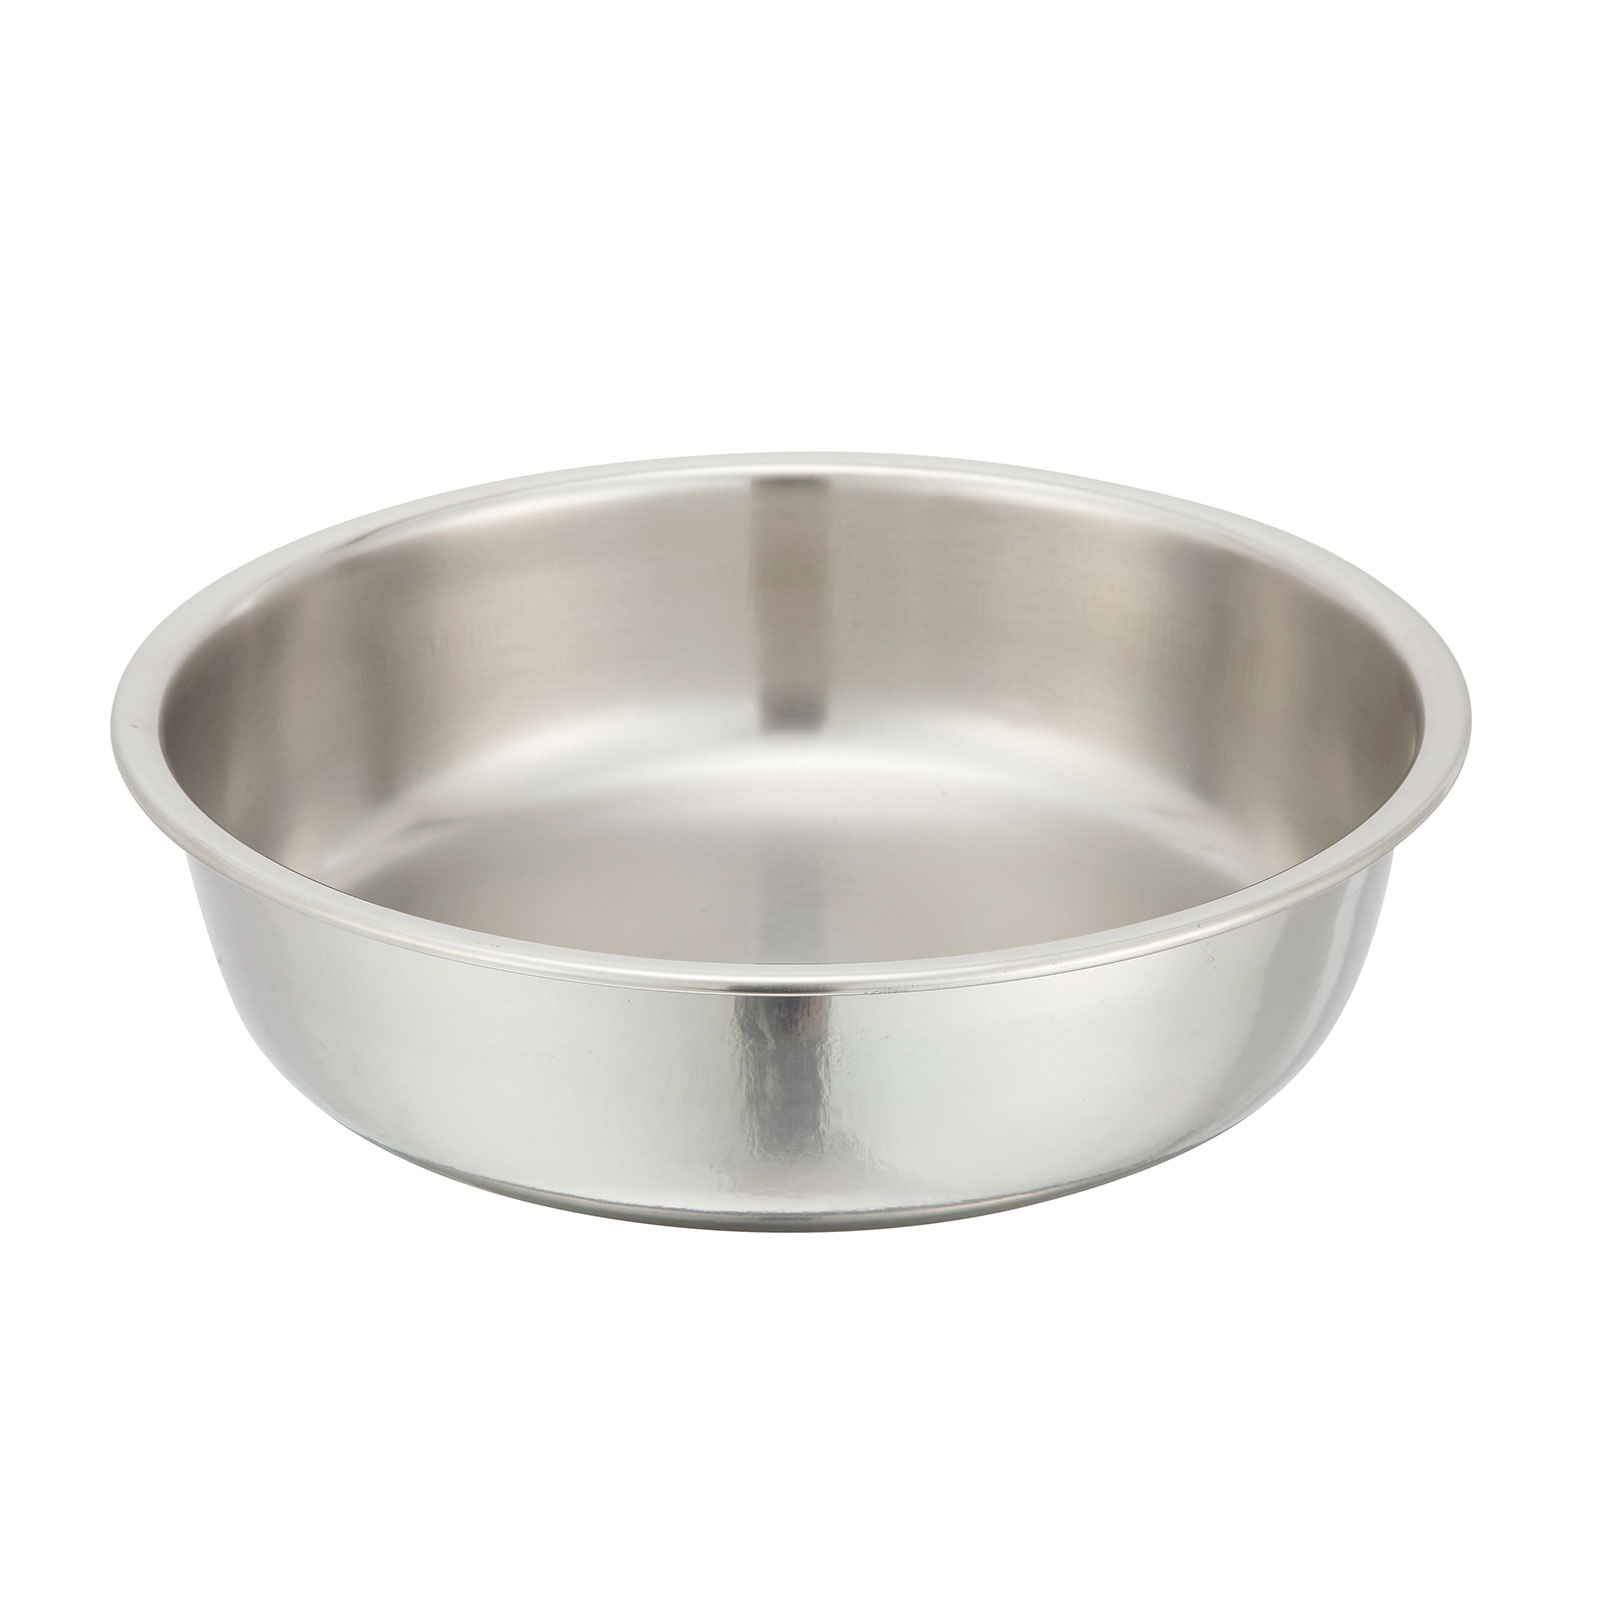 Winco 203-WP chafing dish pan